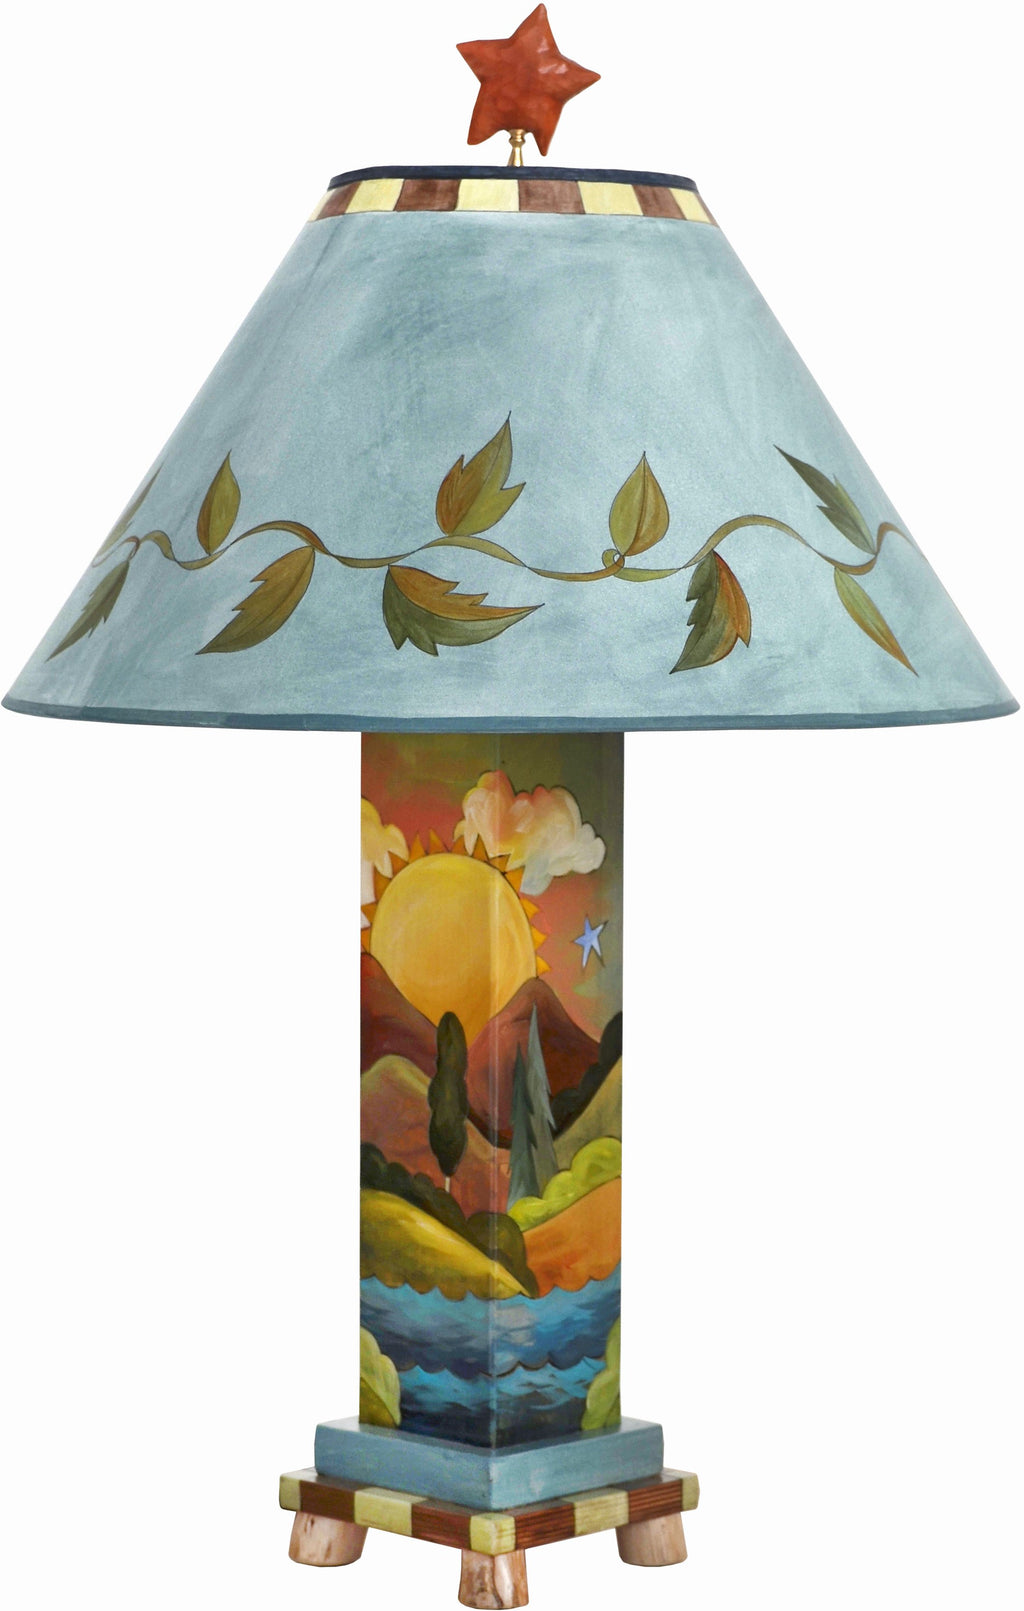 Box Table Lamp –  Beautiful and elegant table lamp with landscape painted center and vine motifs